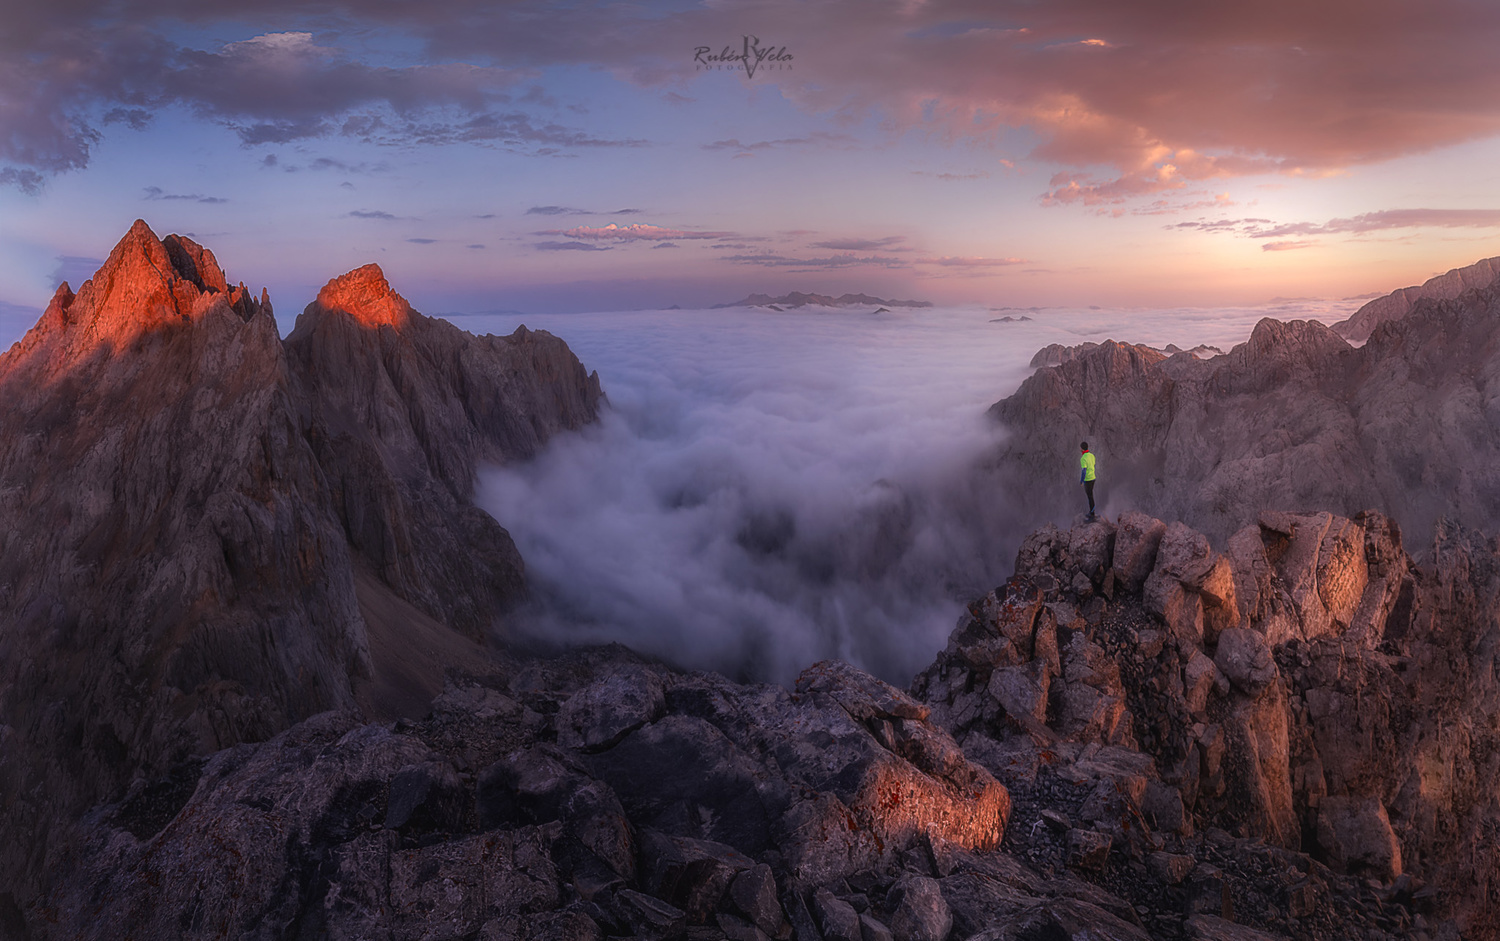 The beautiful light of the mountains by Rubén Vela Martín